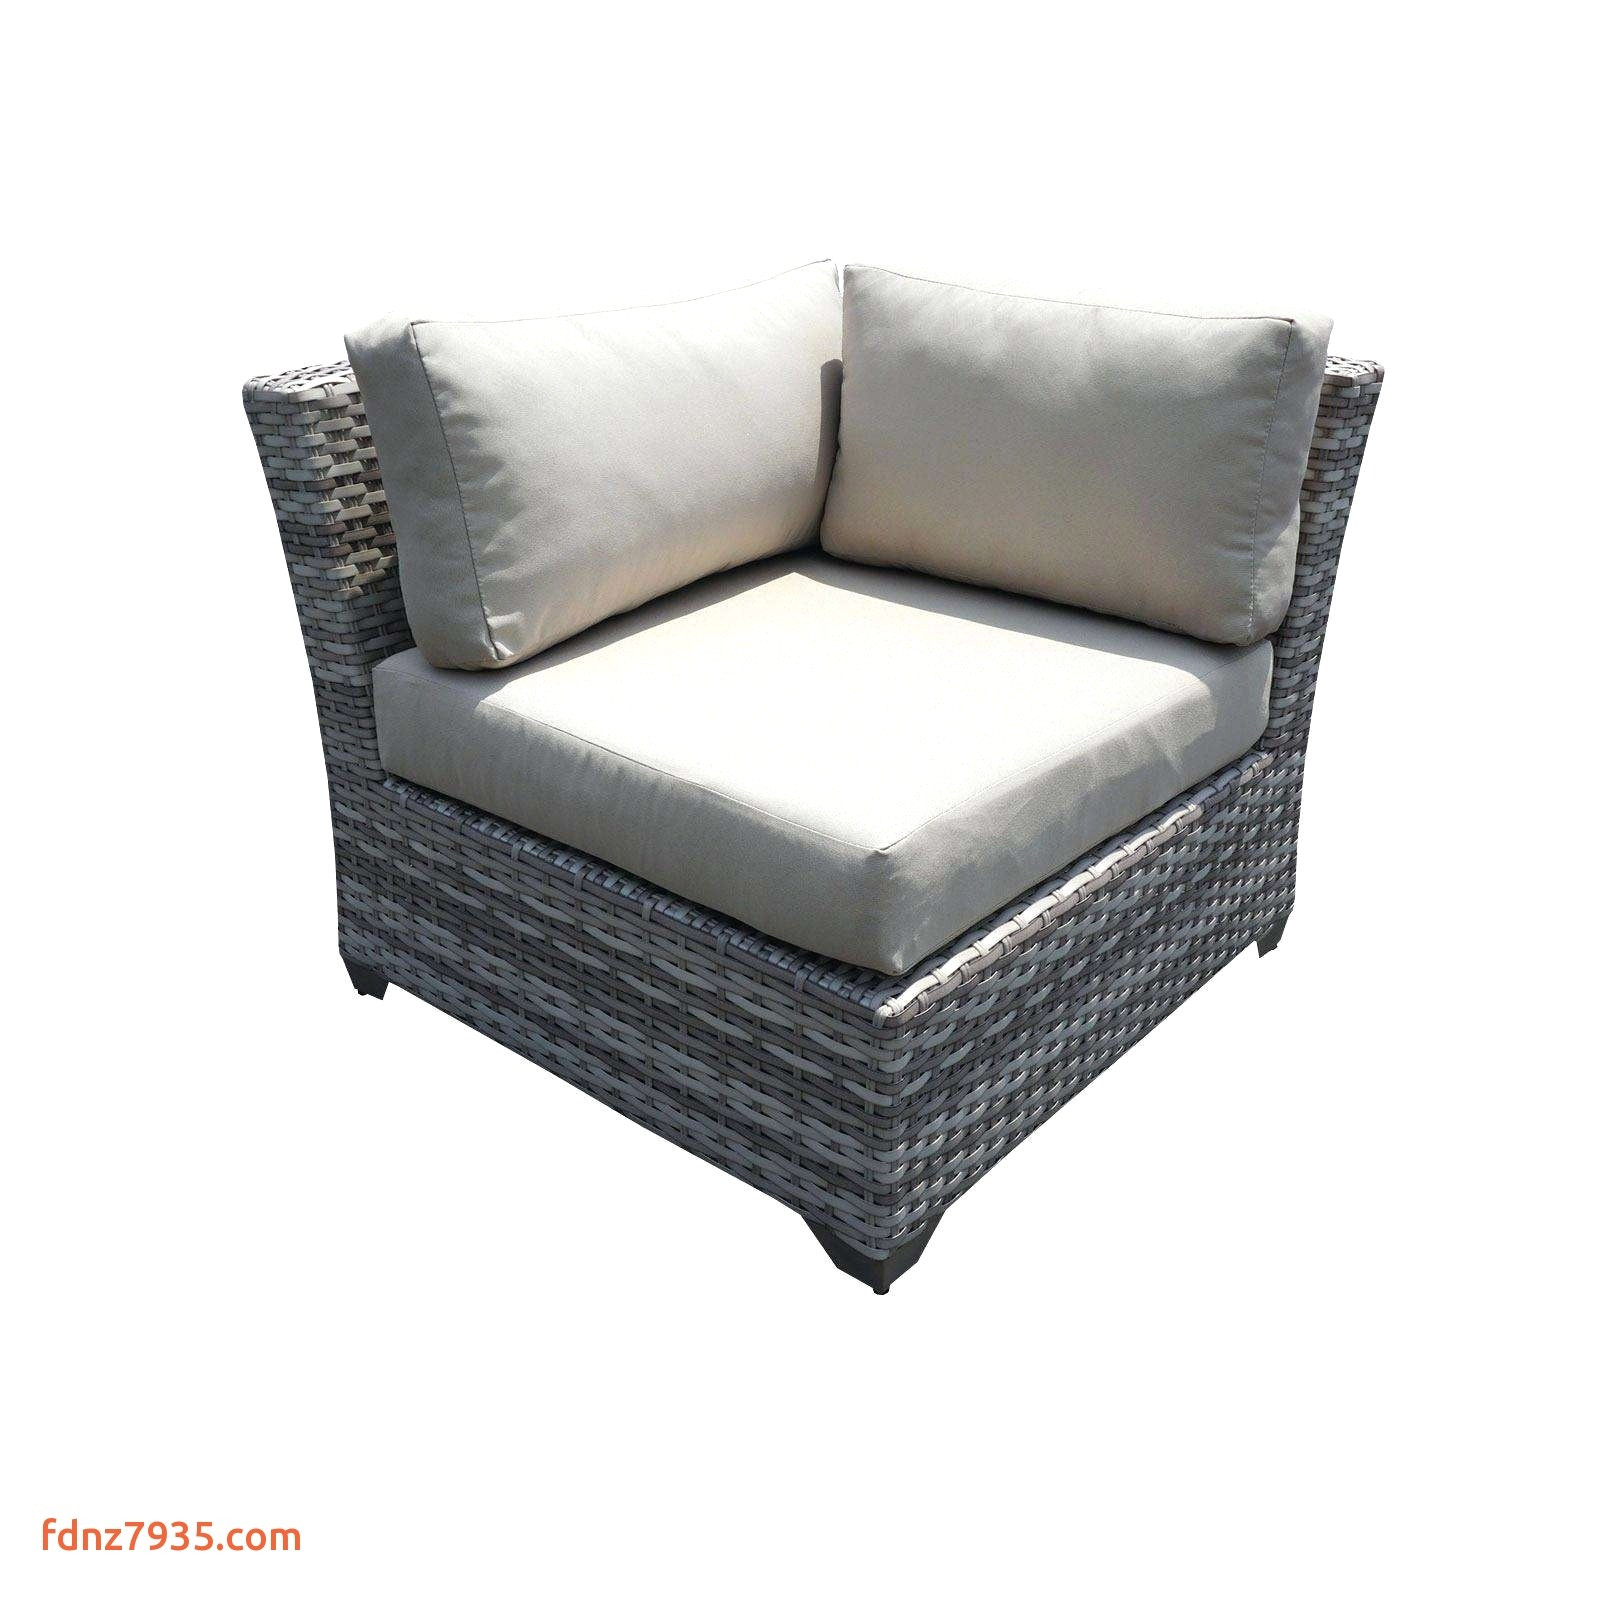 patio furniture warehouse ideas wicker outdoor sofa 0d patio chairs scheme best patio furniture